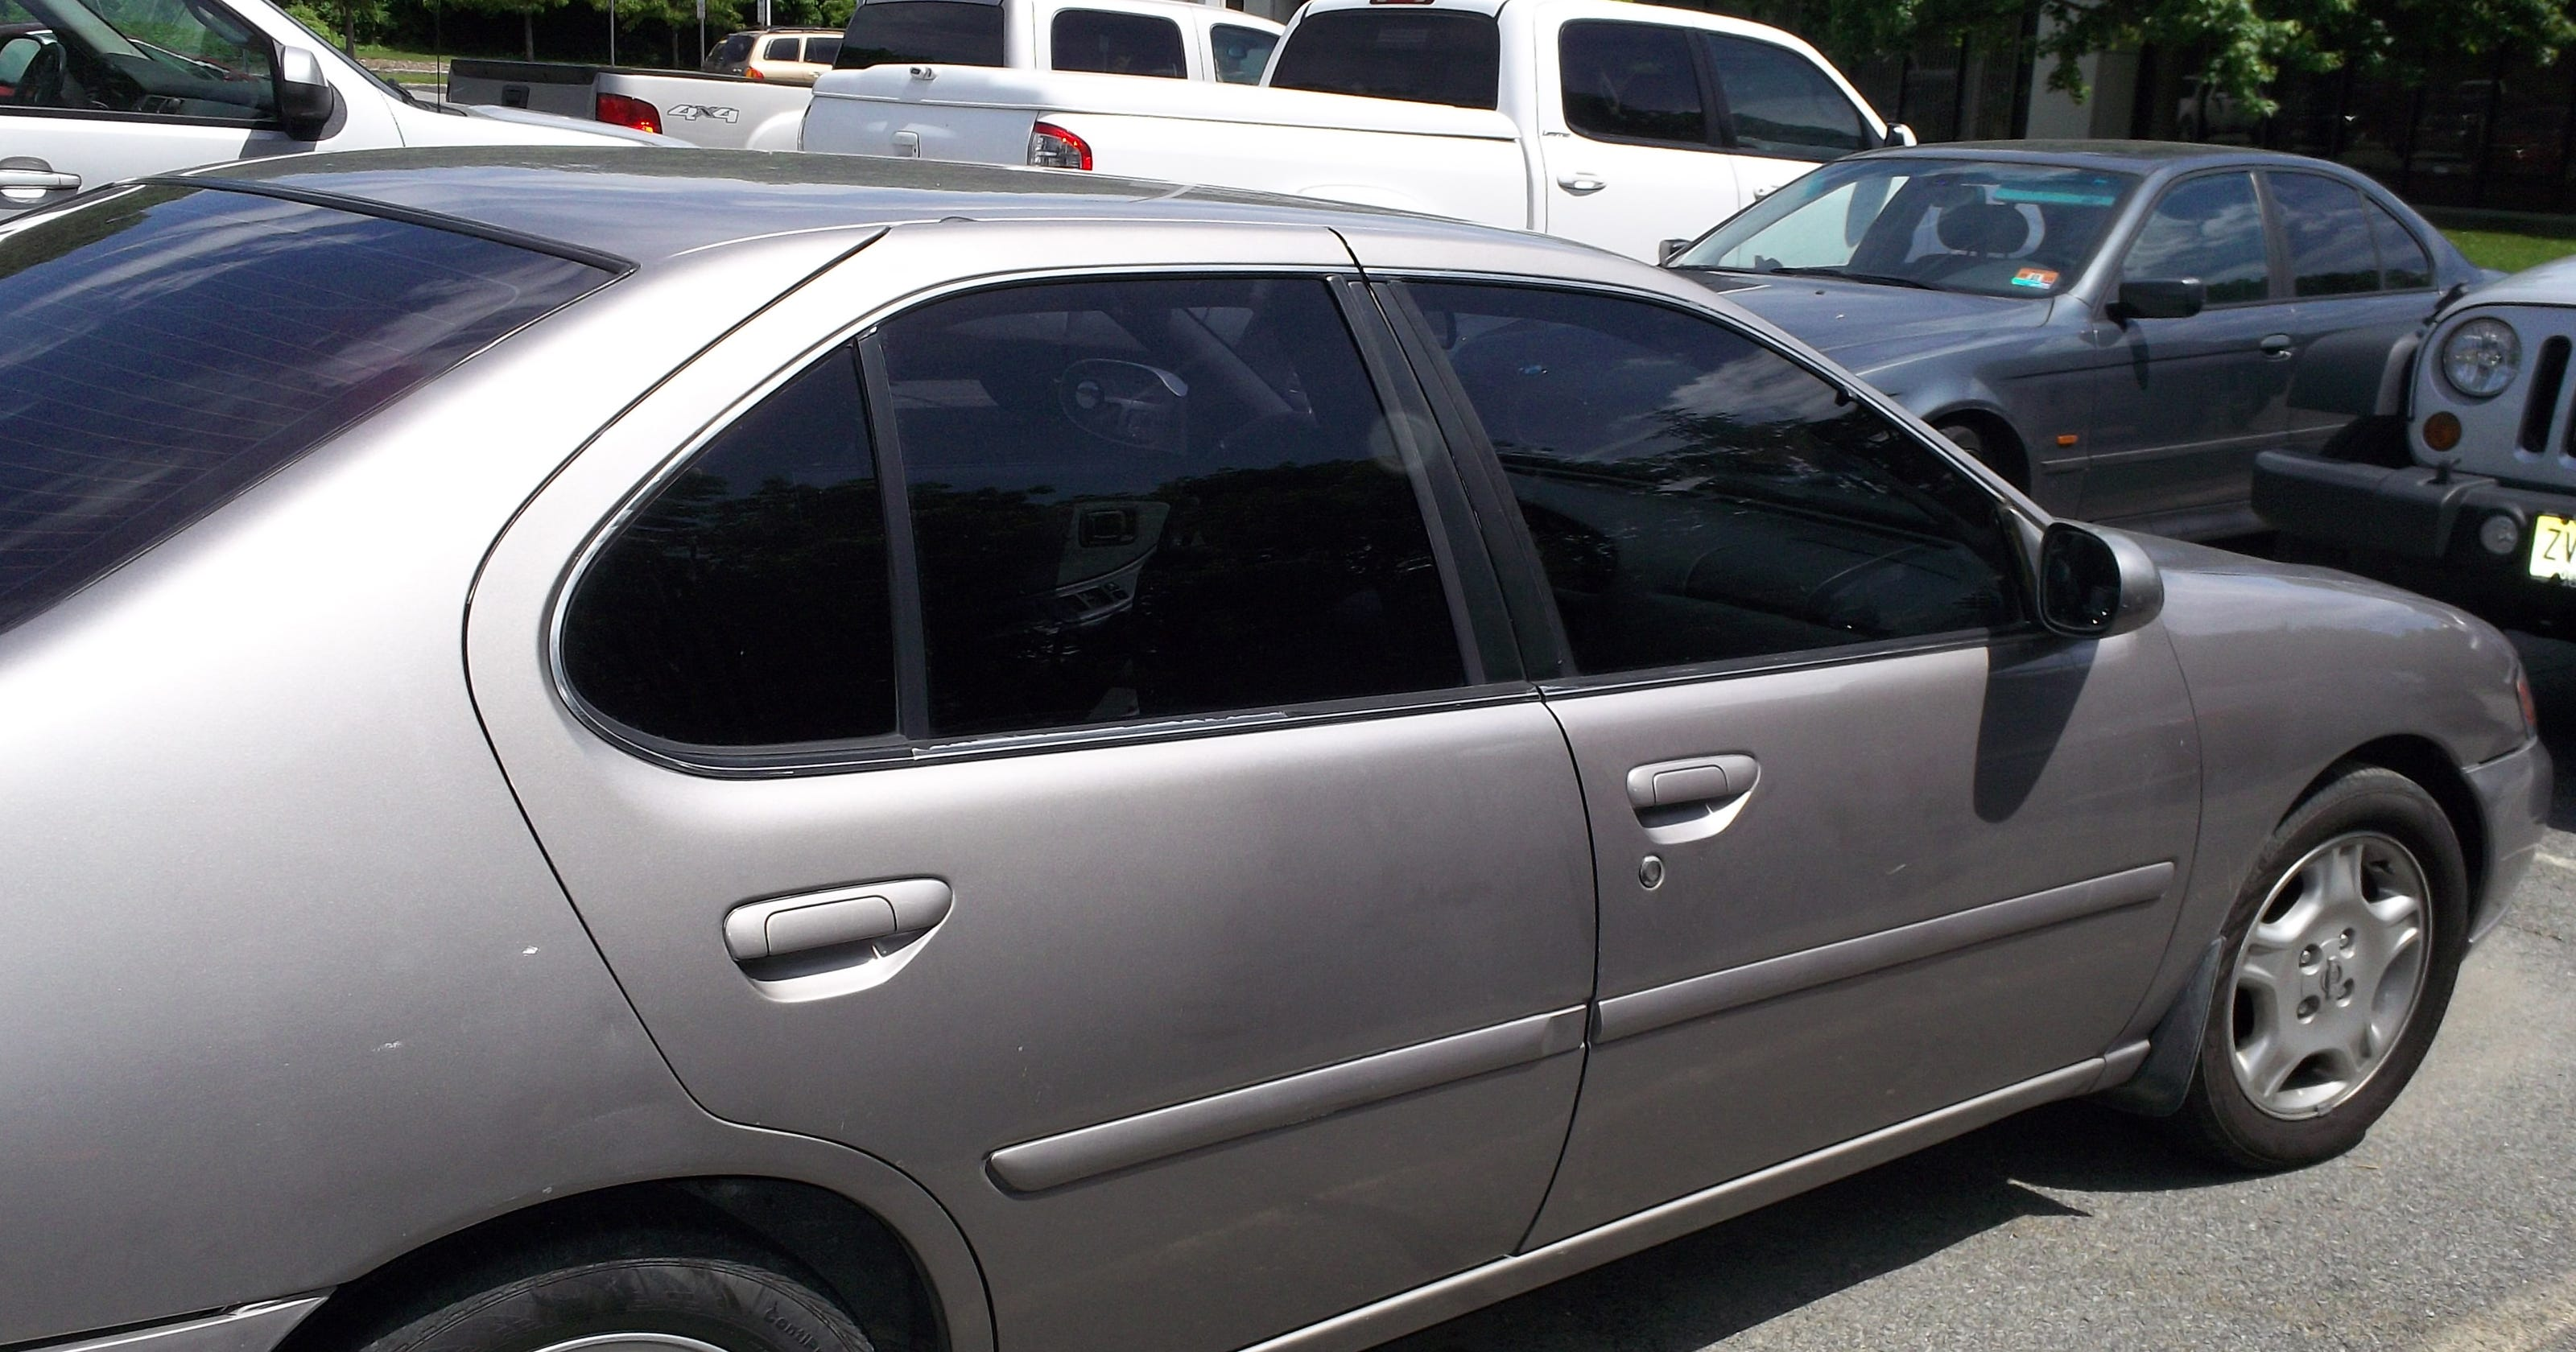 Tinted car windows keep cops uneasy in NJ